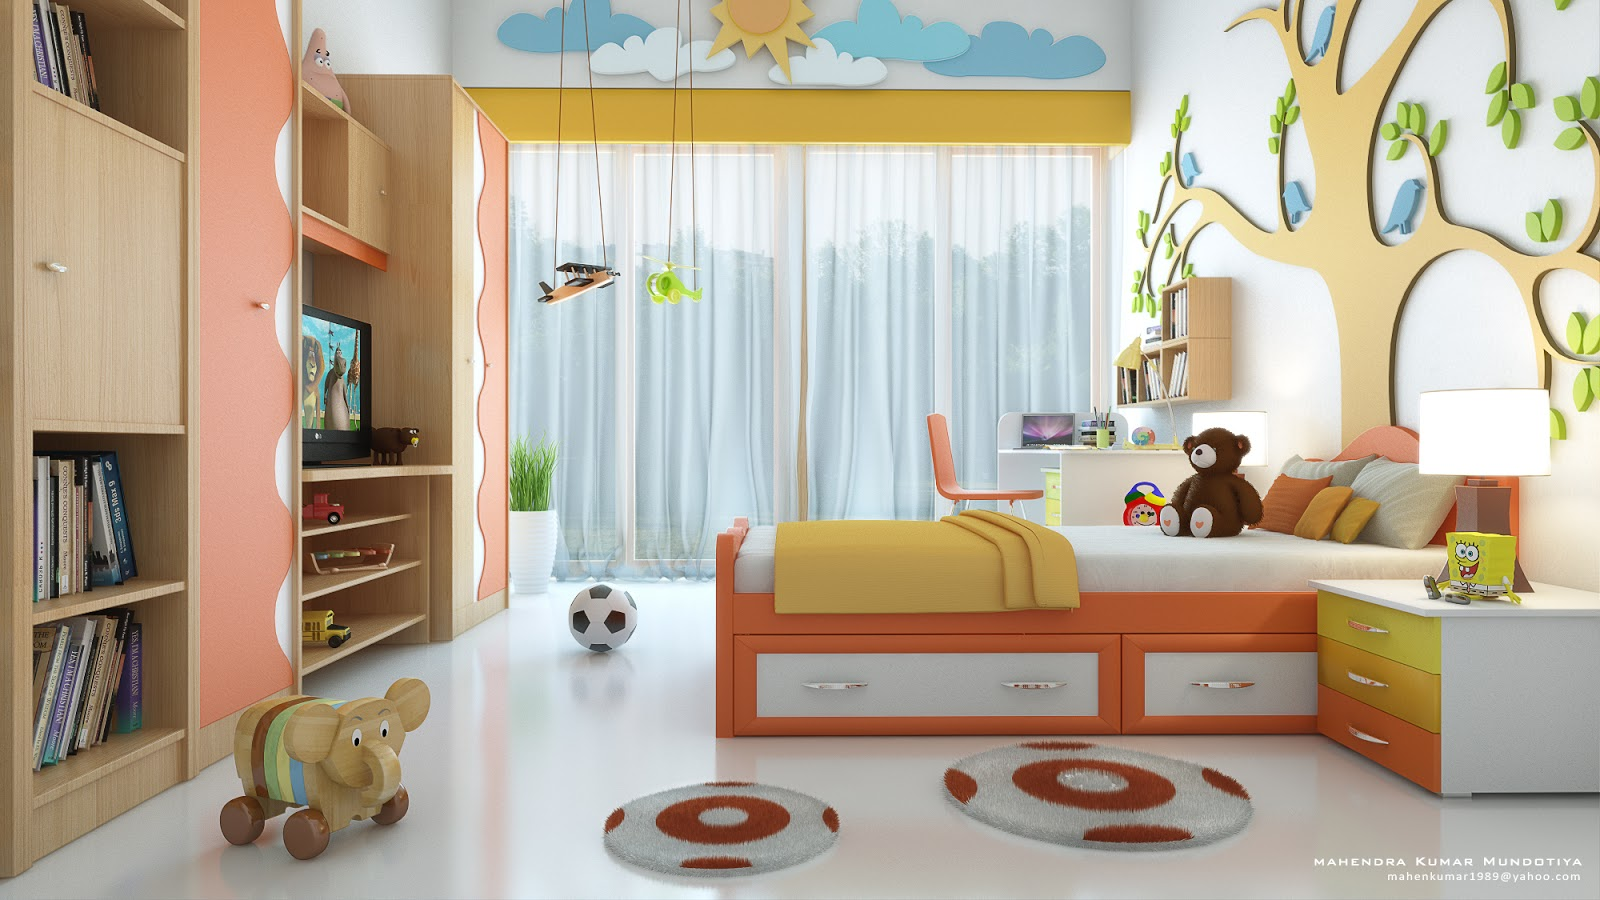 The Kidsroom Setting Up And Customizing Kids Room Yonohomedesign